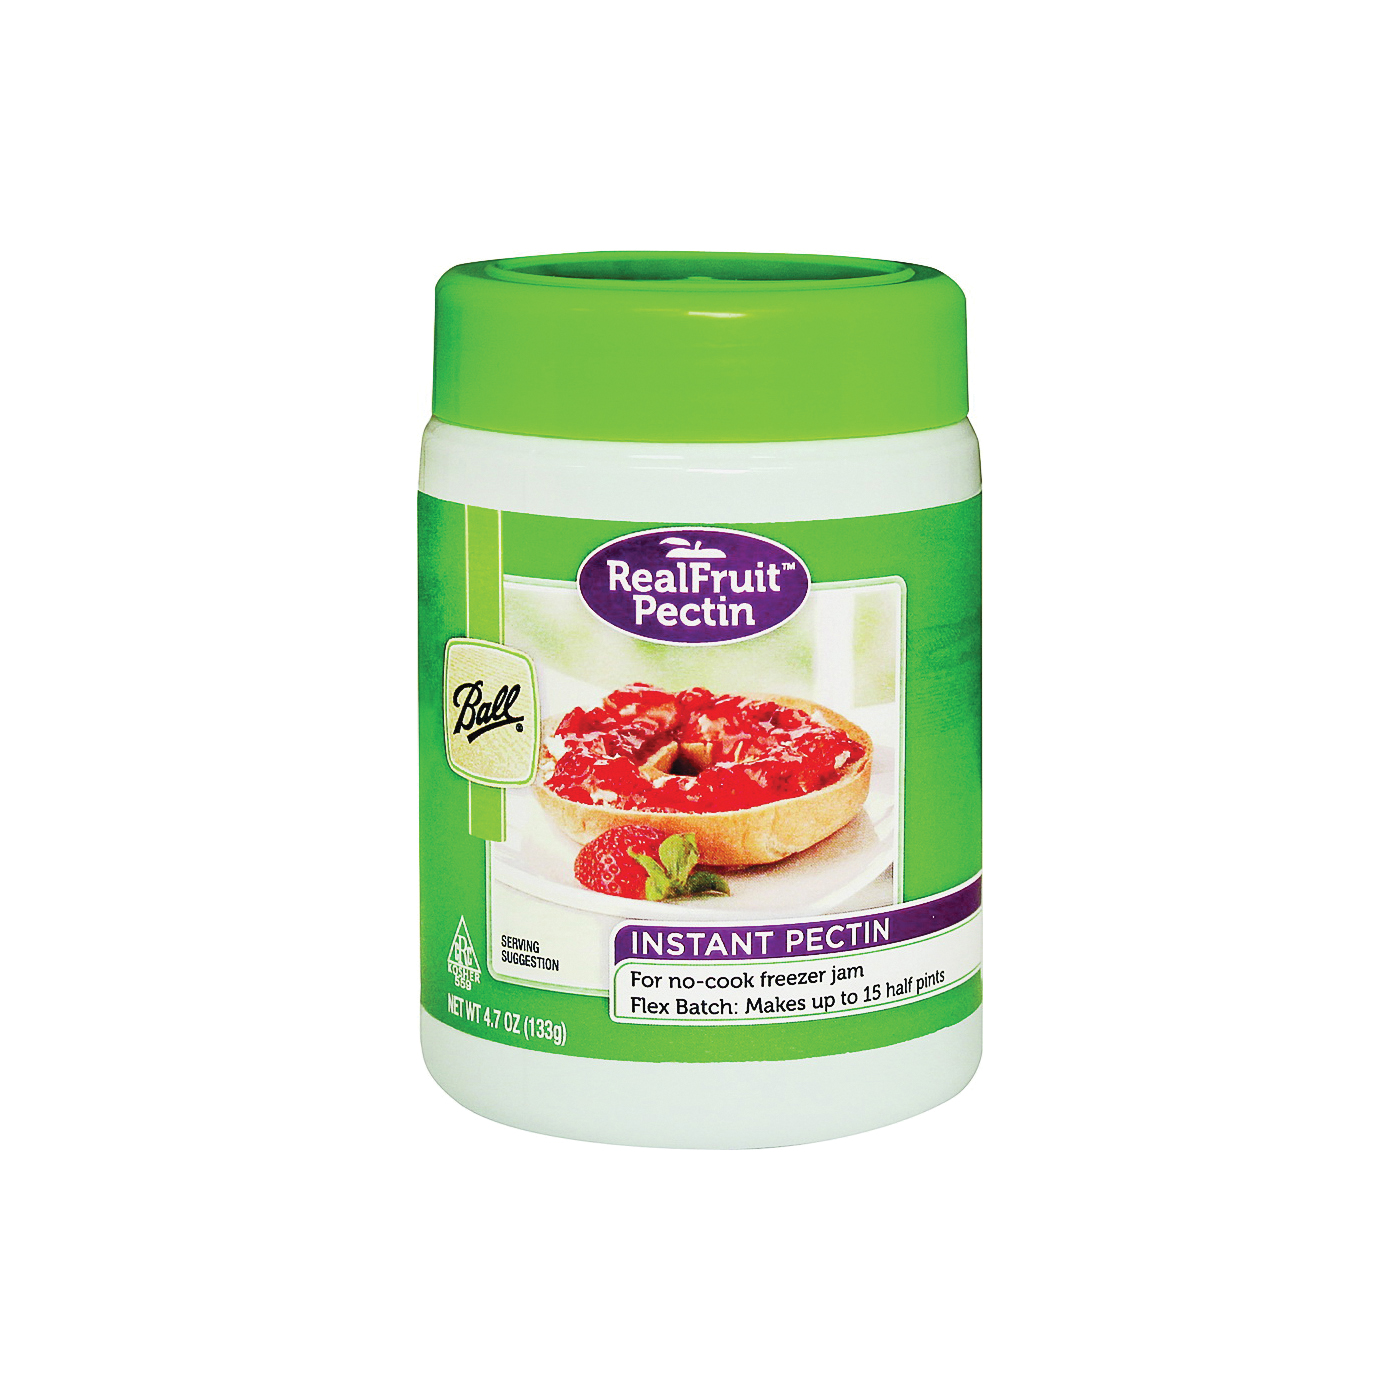 Picture of Ball Realfruit 71365 Instant Pectin, 4.7 oz Package, Bottle